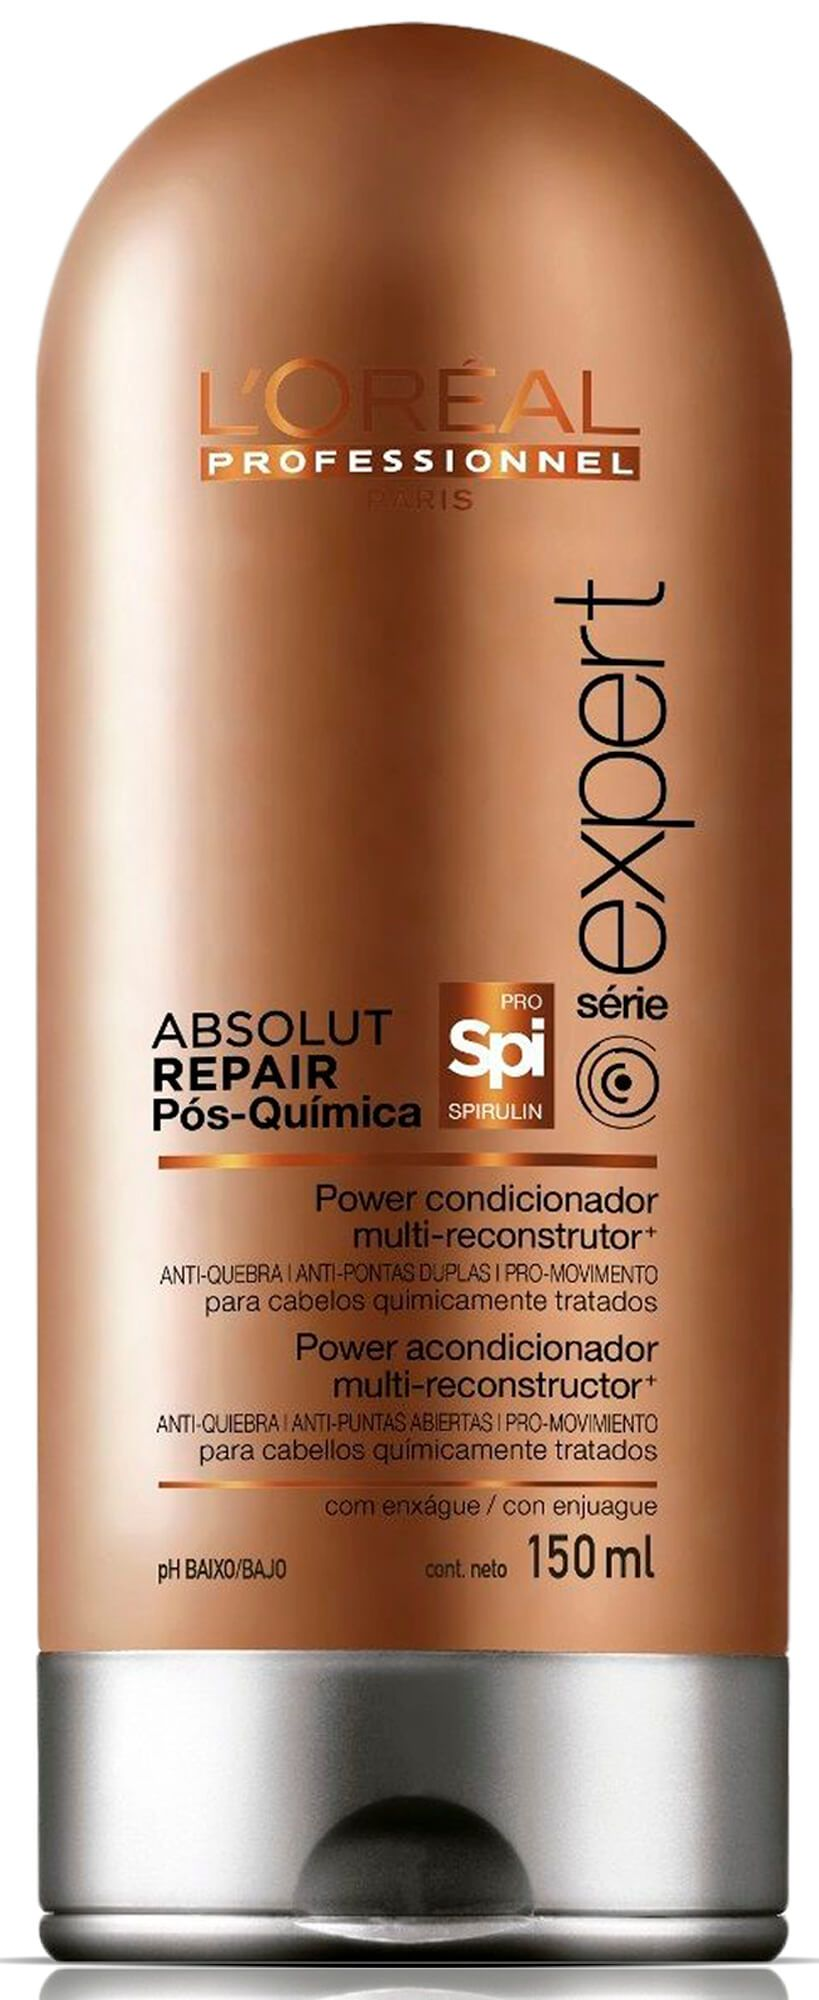 Condicionador L'oréal Absolut Repair Pós-química - 150ml